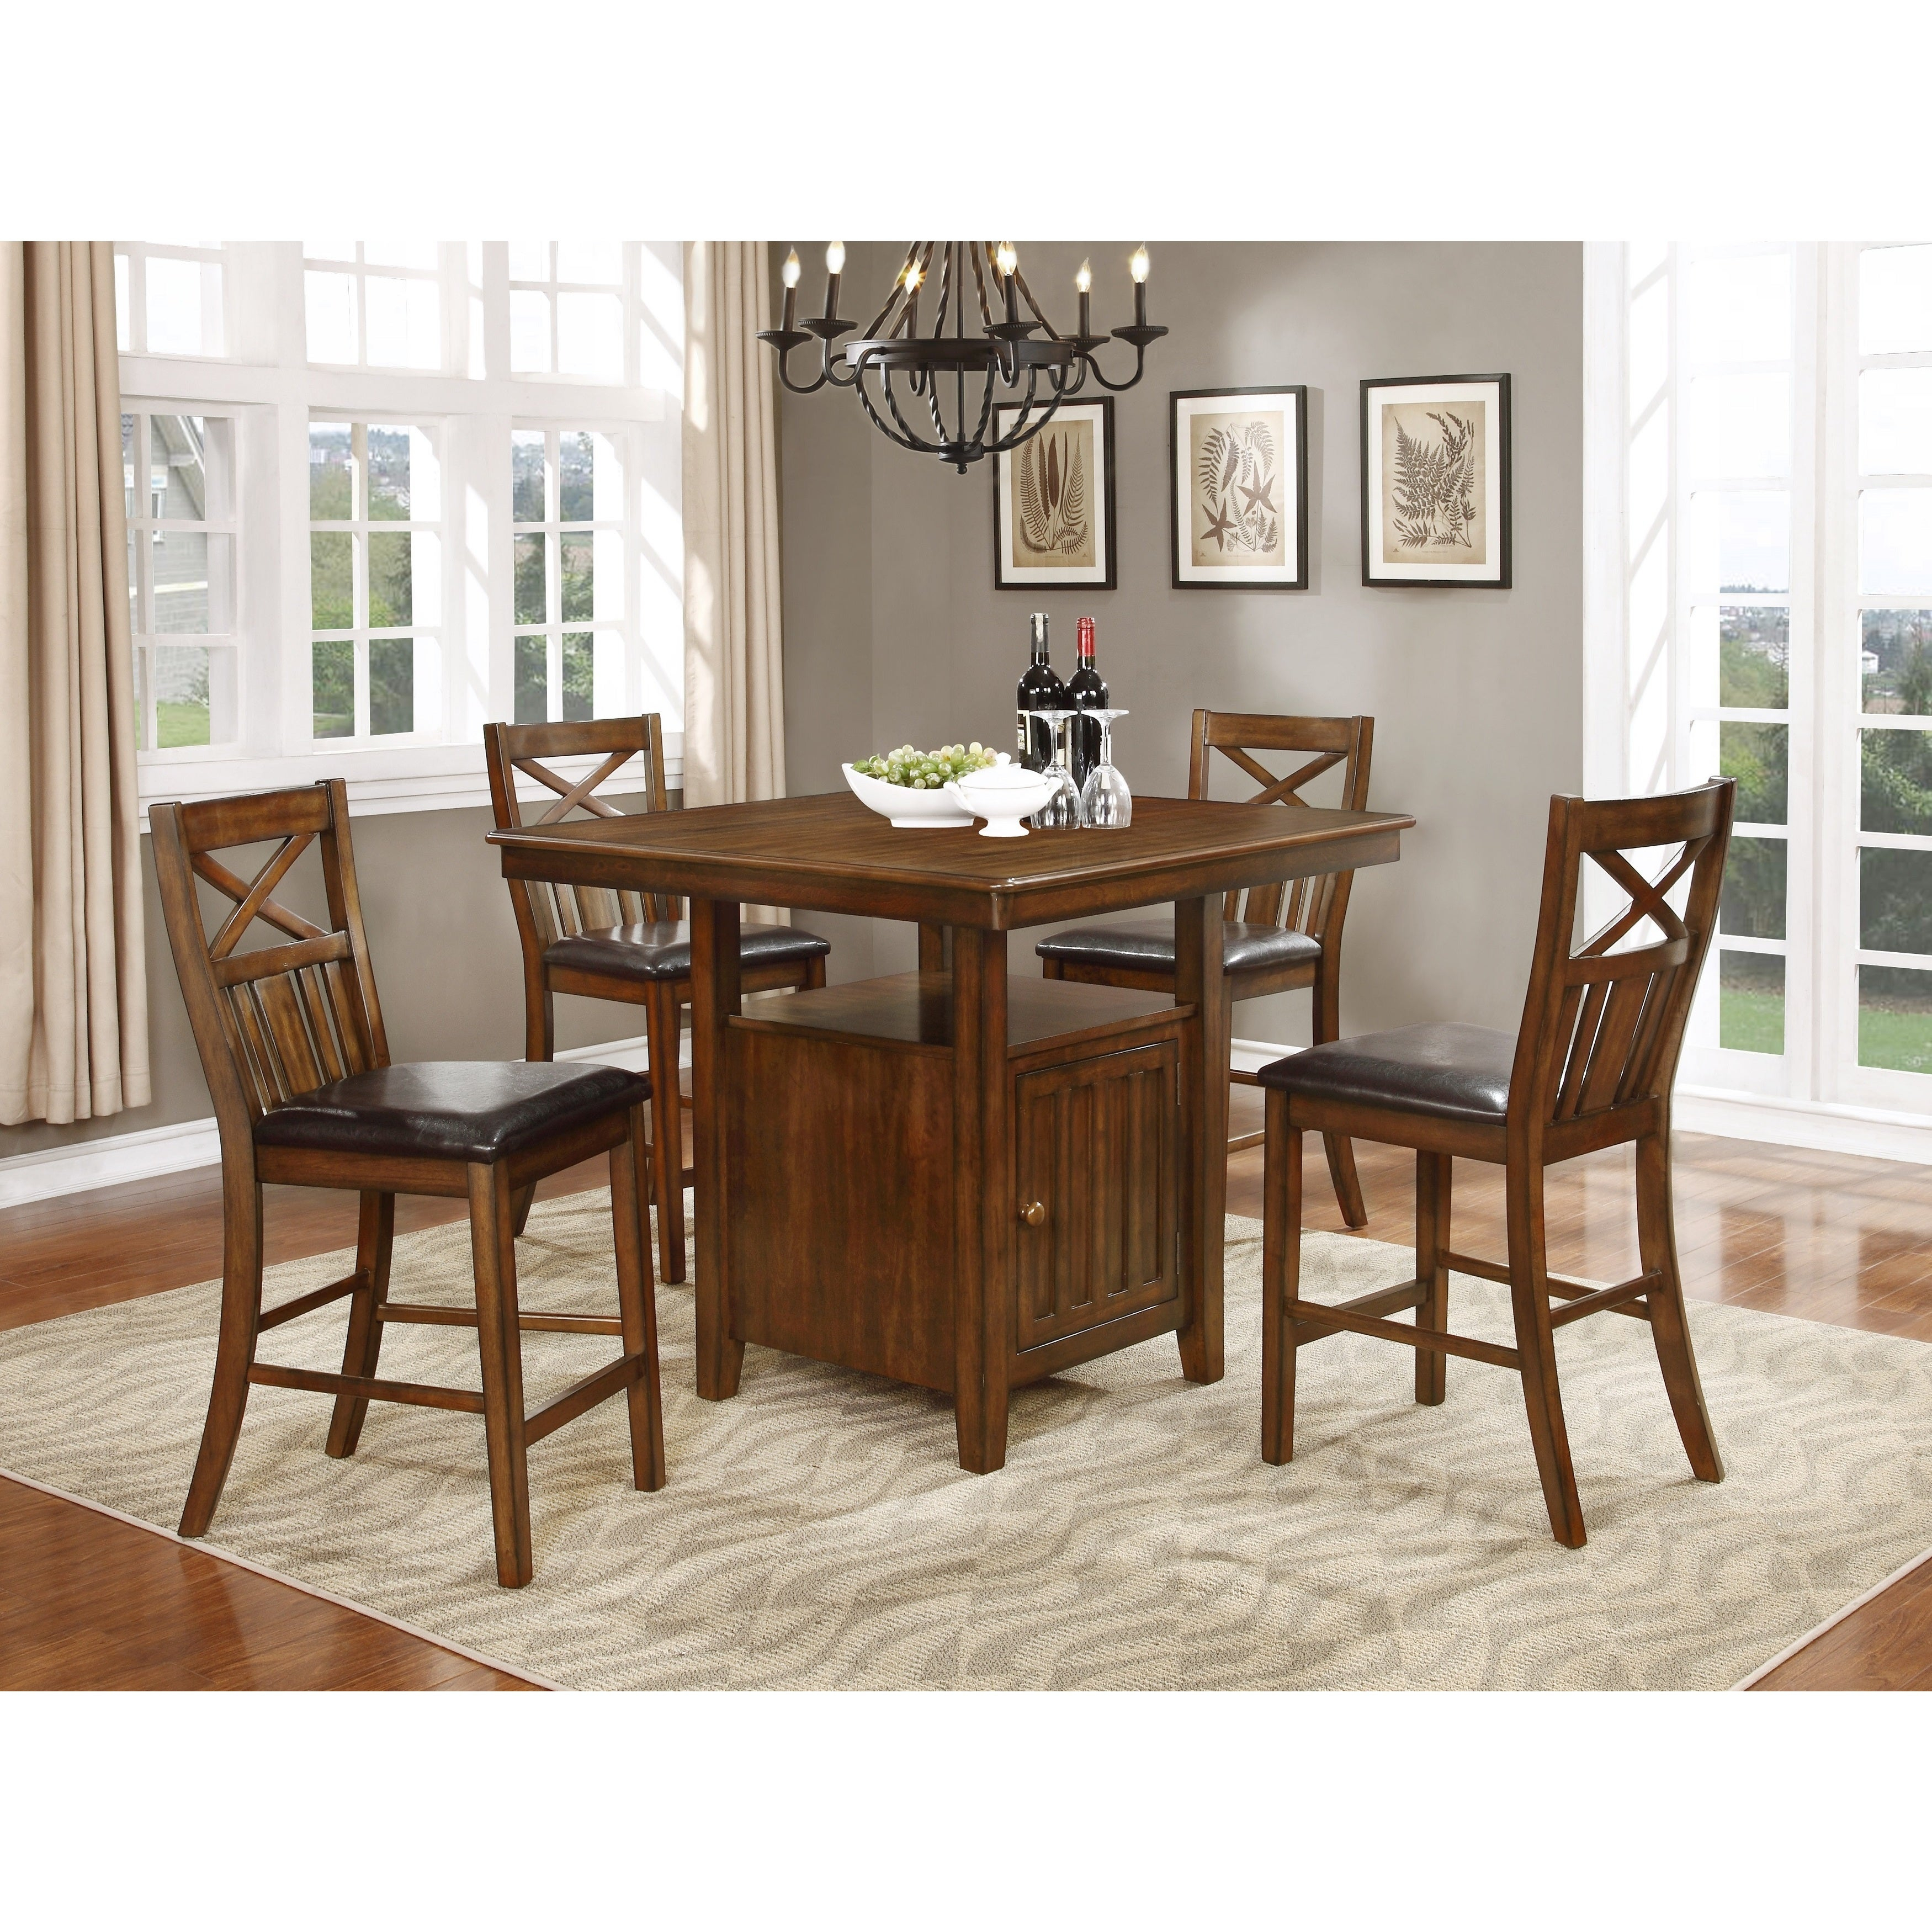 Shop Bryson Cherry Brown Counter Height Dining Table Set W/ Storage Inside Most Recent Bryson 5 Piece Dining Sets (View 5 of 20)